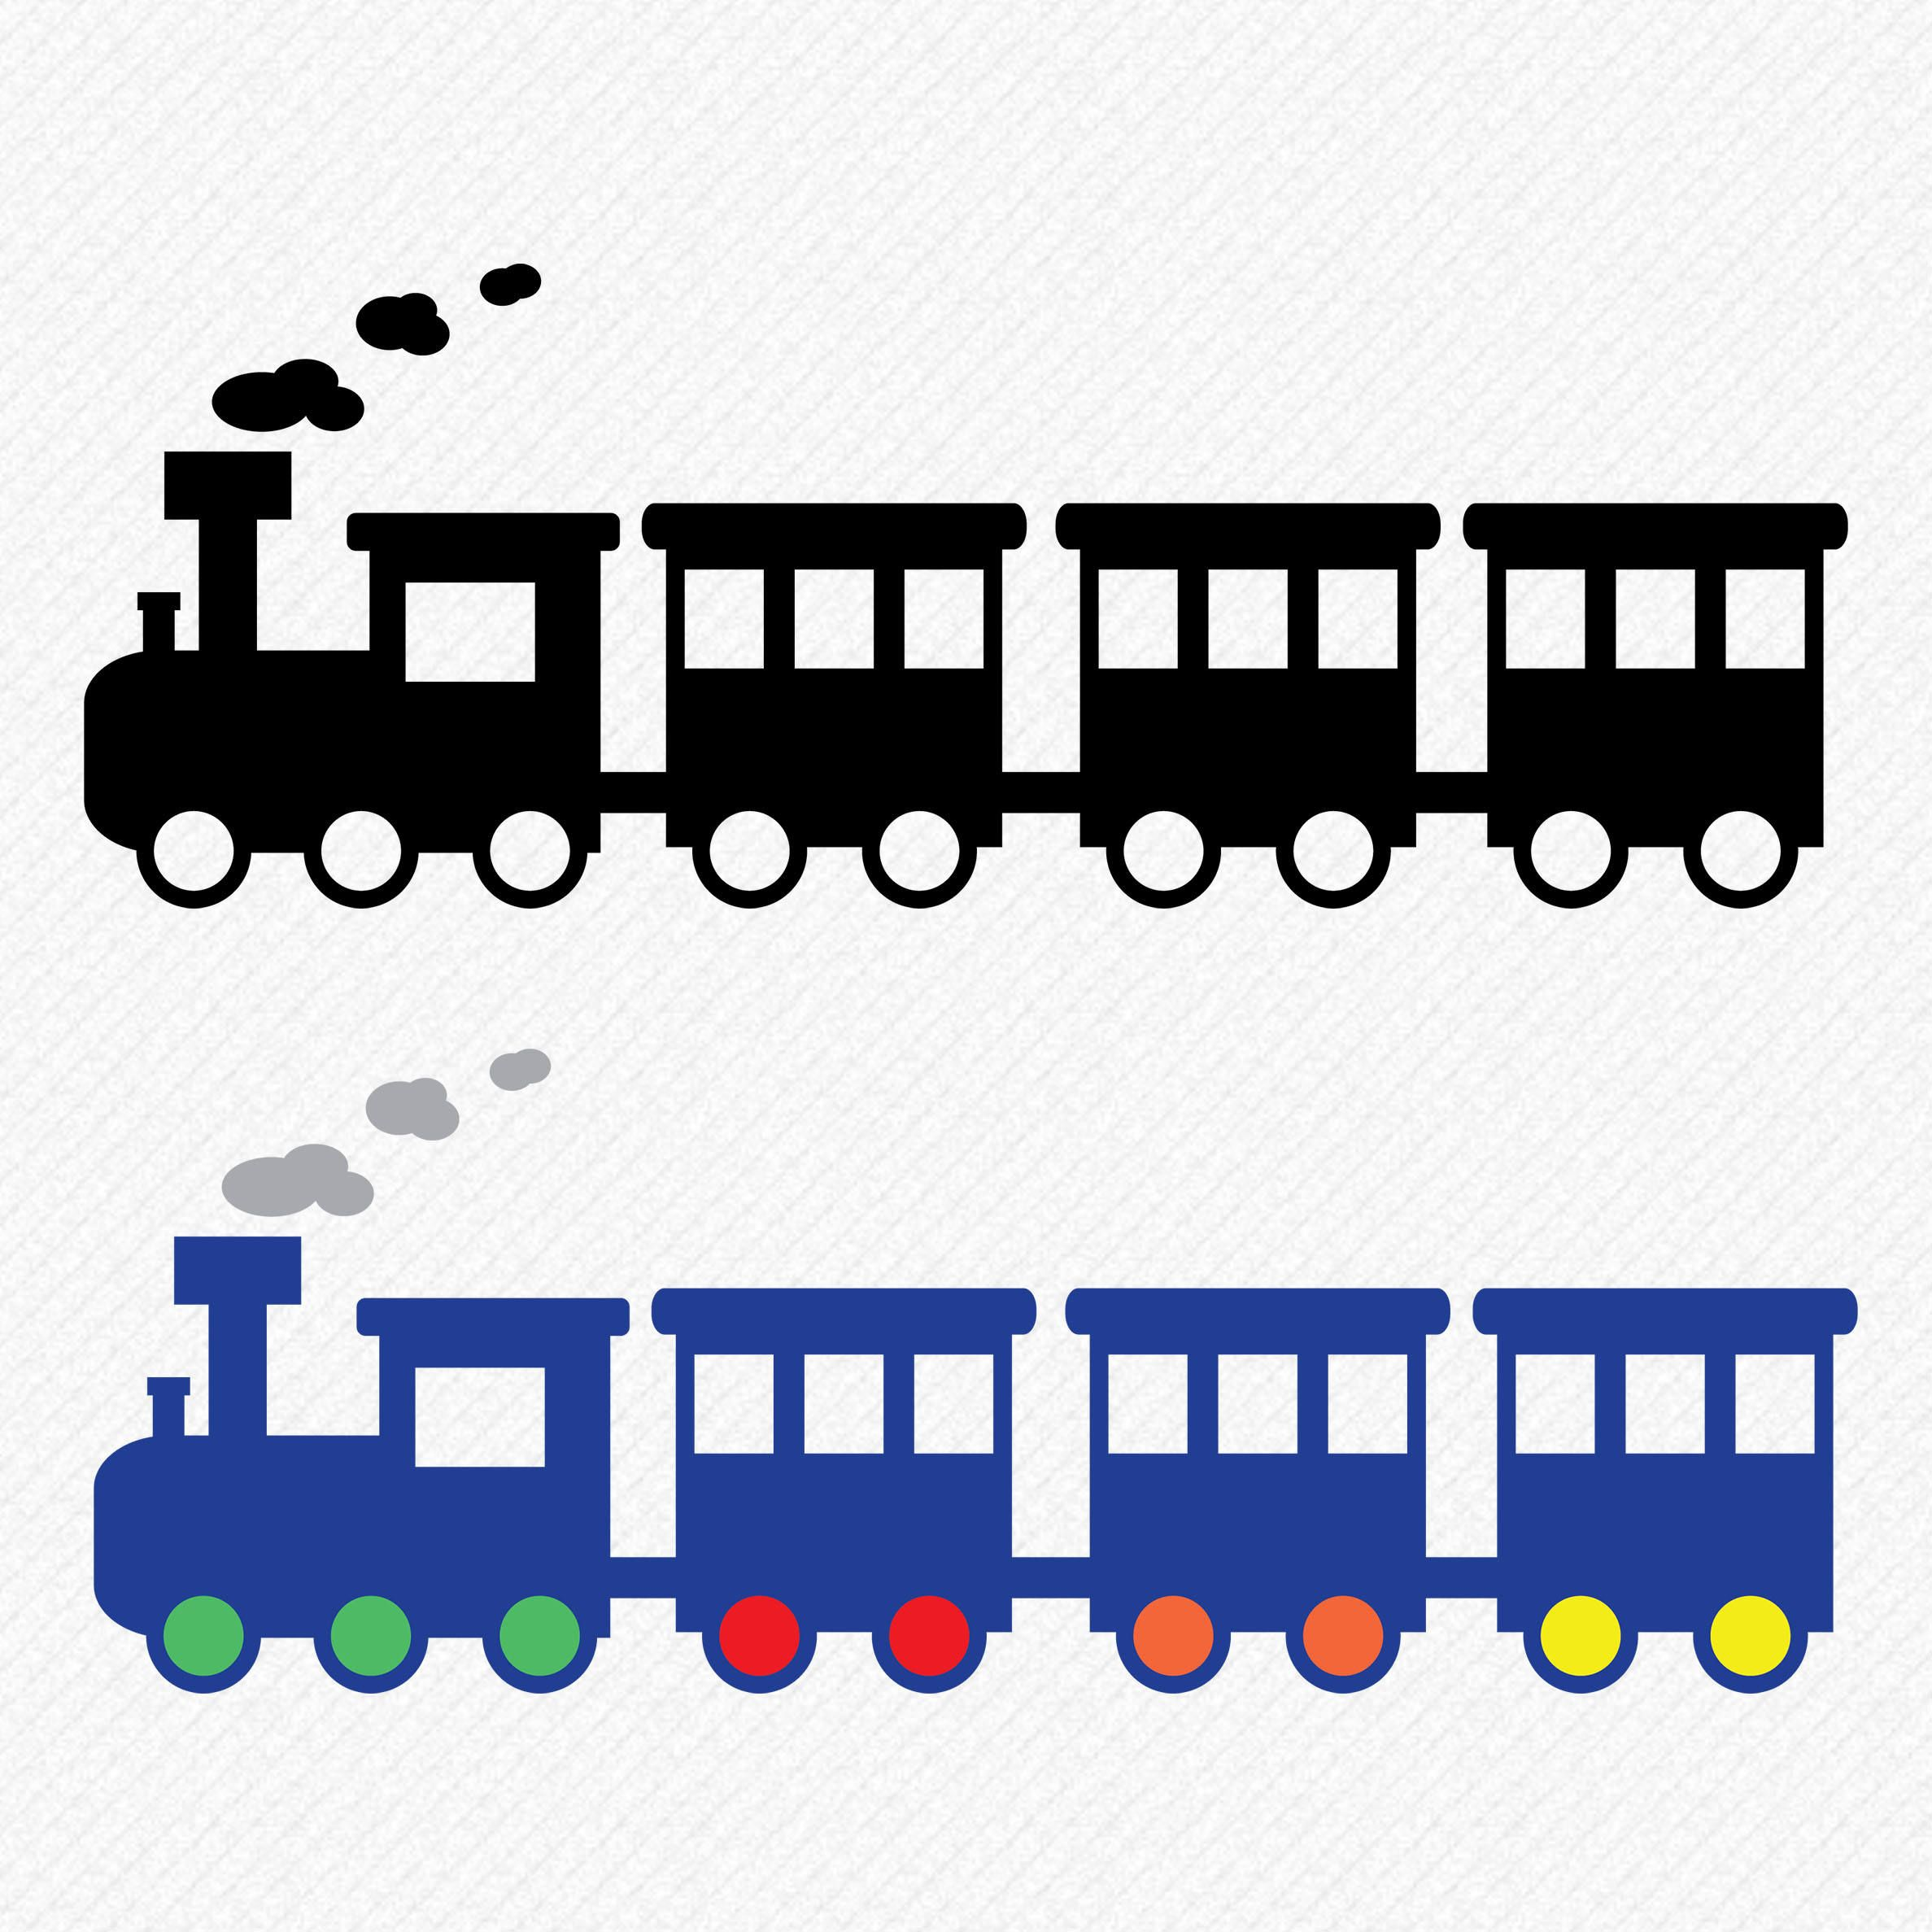 Silhouette train clipart black and white vector transparent download Train svg, Train Clipart, Train Silhouette, Train Vector ... vector transparent download